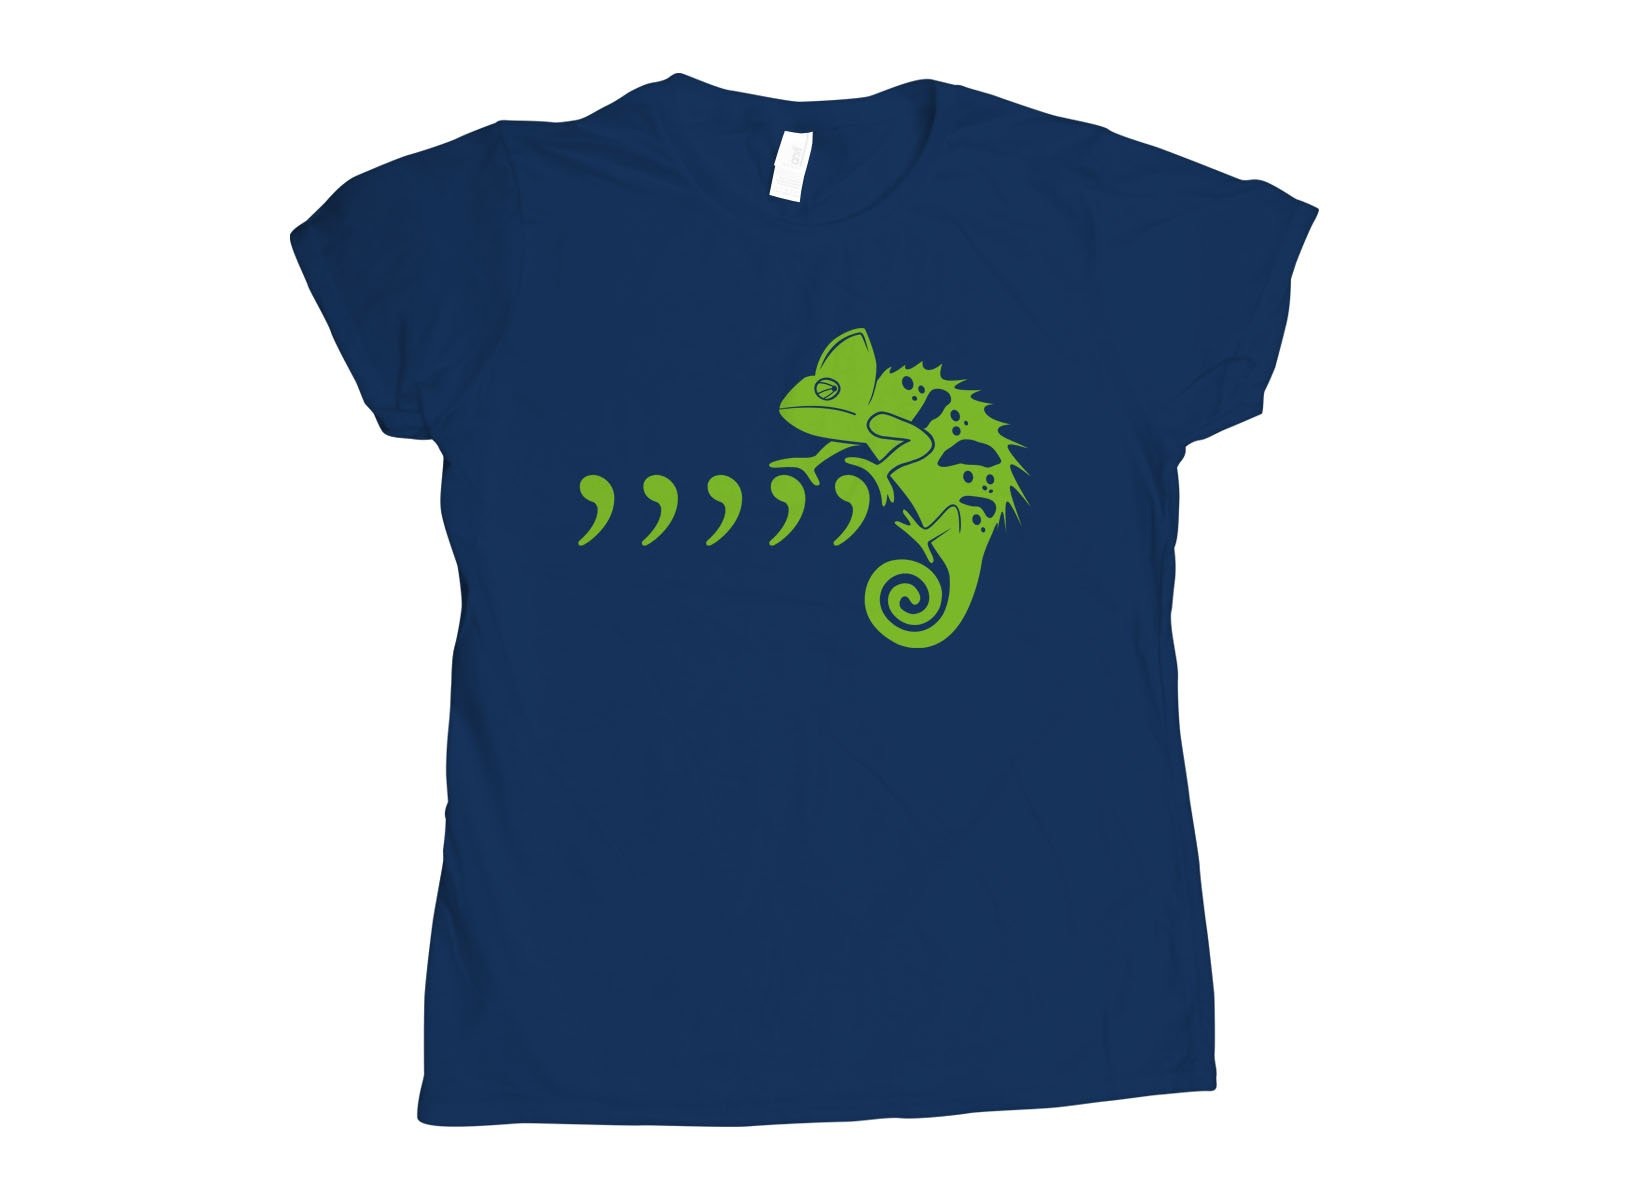 Comma Chameleon on Womens T-Shirt